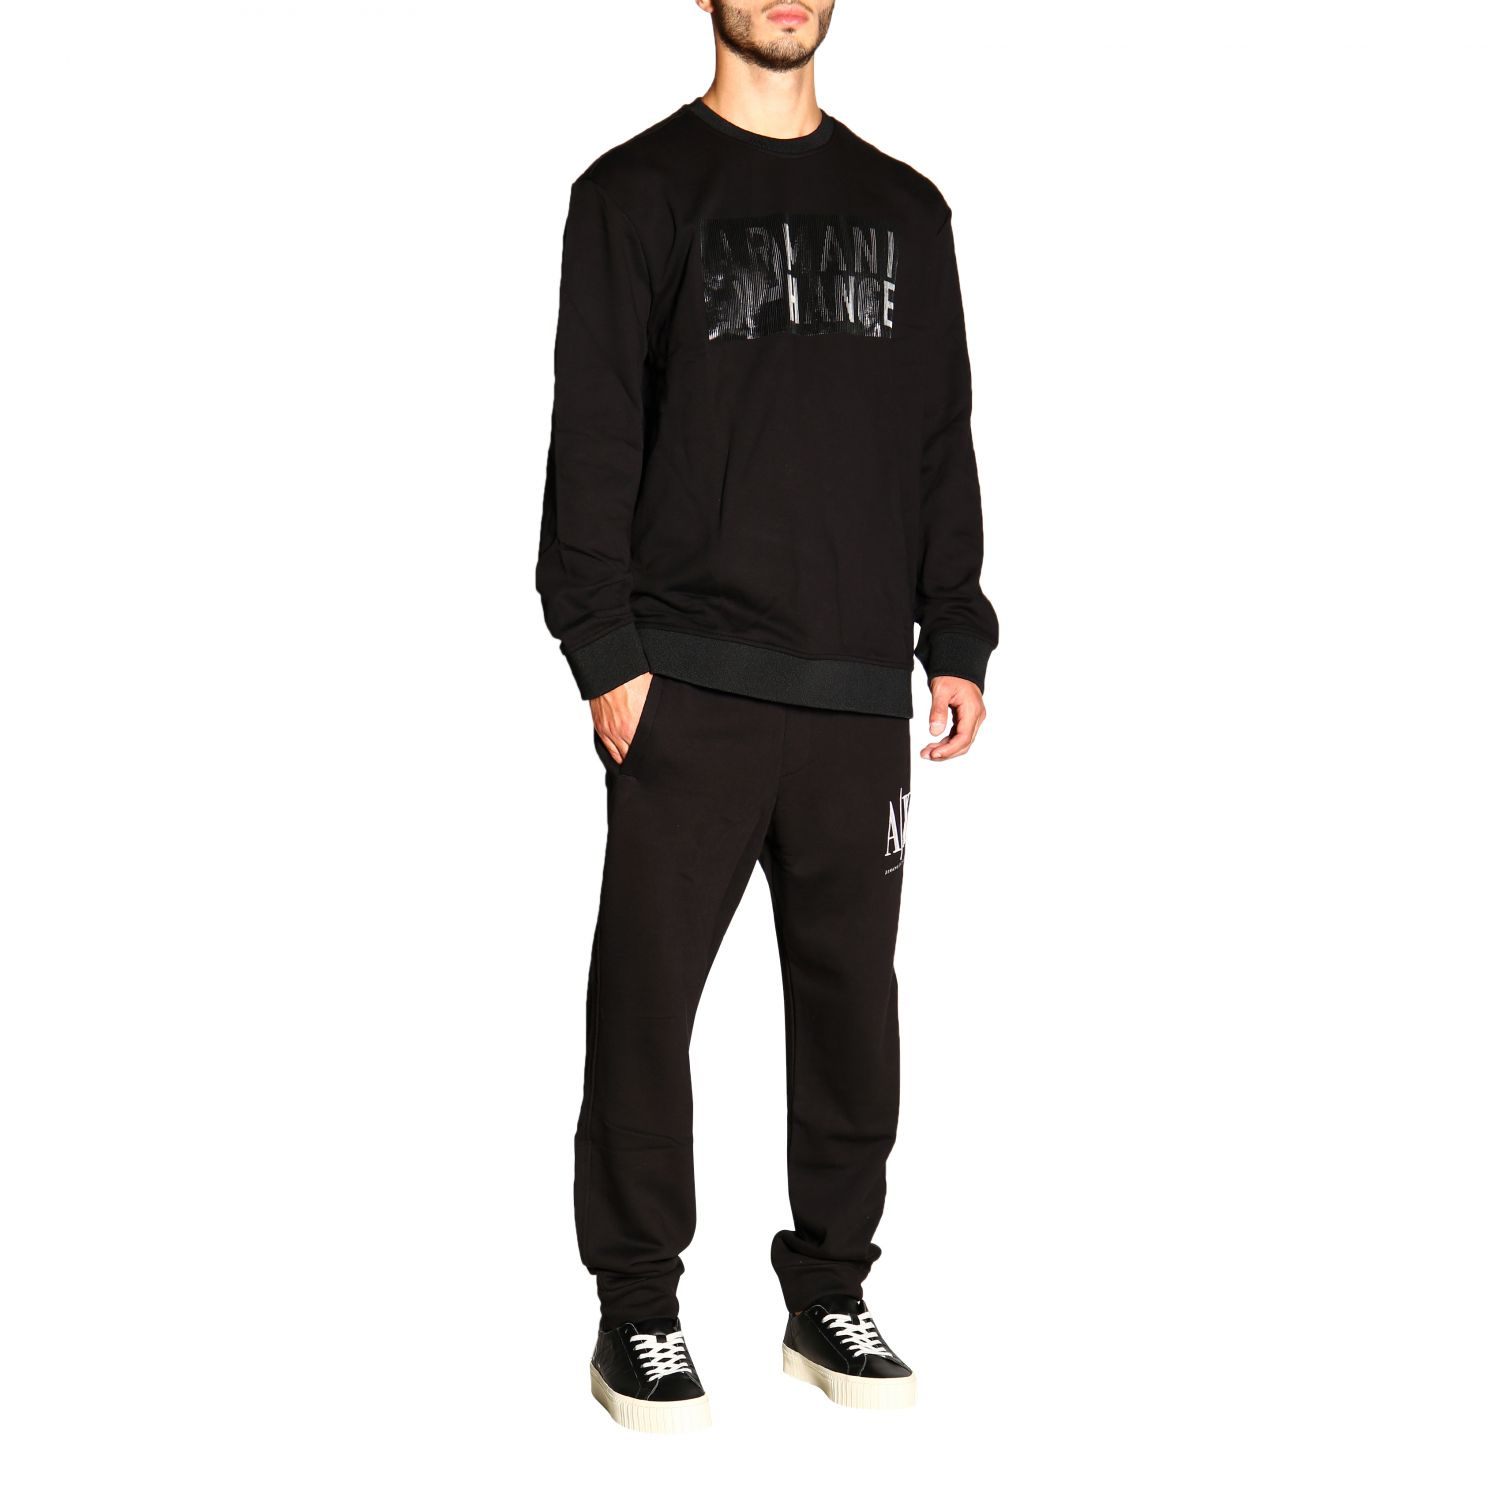 Sweatshirt Armani Exchange: Pull homme Armani Exchange noir 2